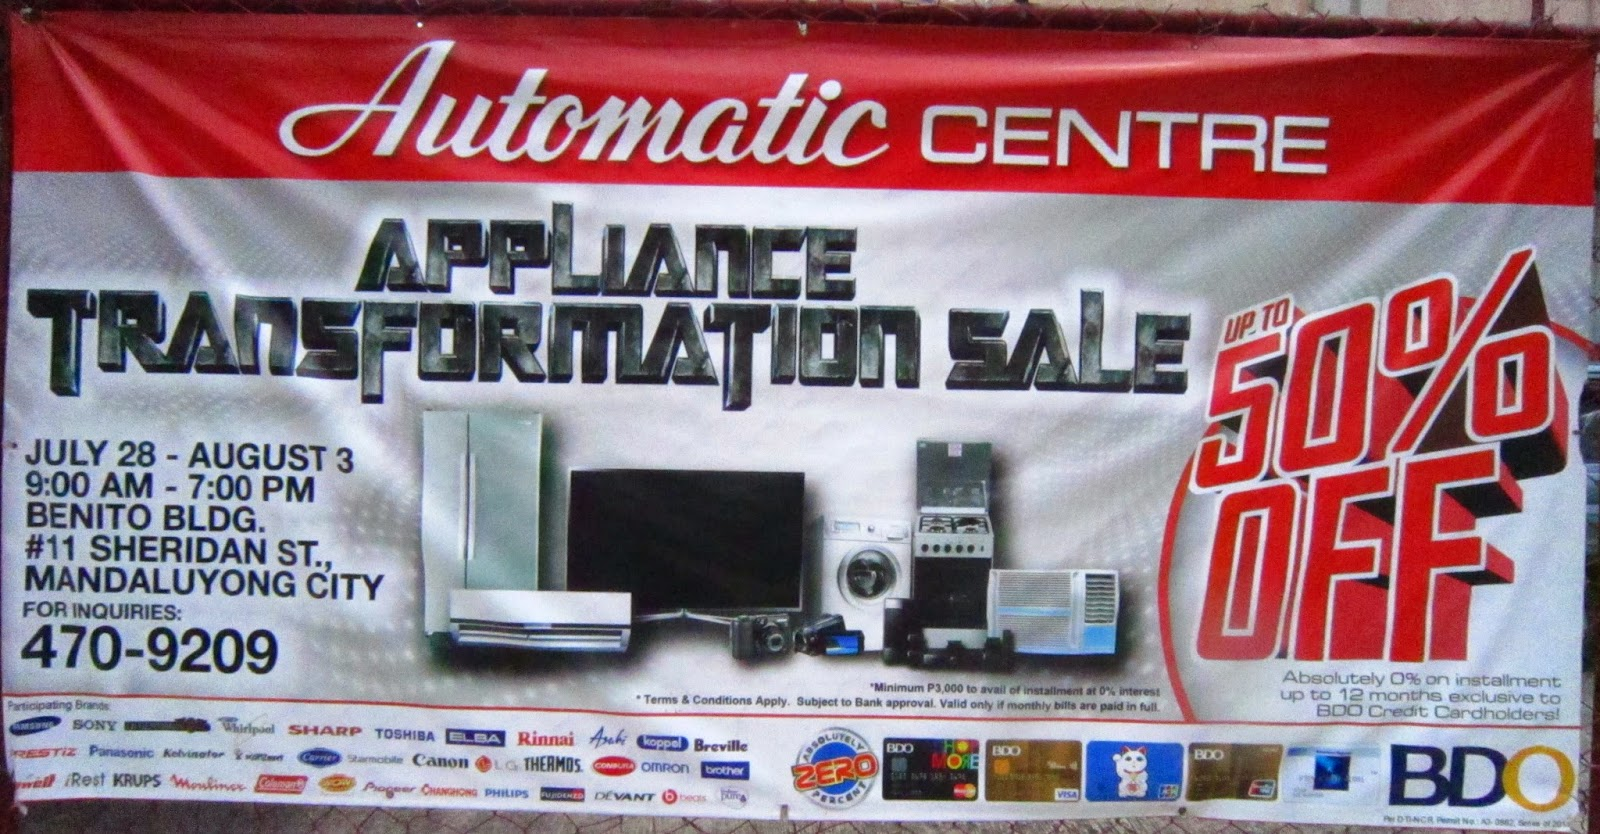 AUTOMATIC CENTRE APPLIANCE TRANSFORMATION SALE